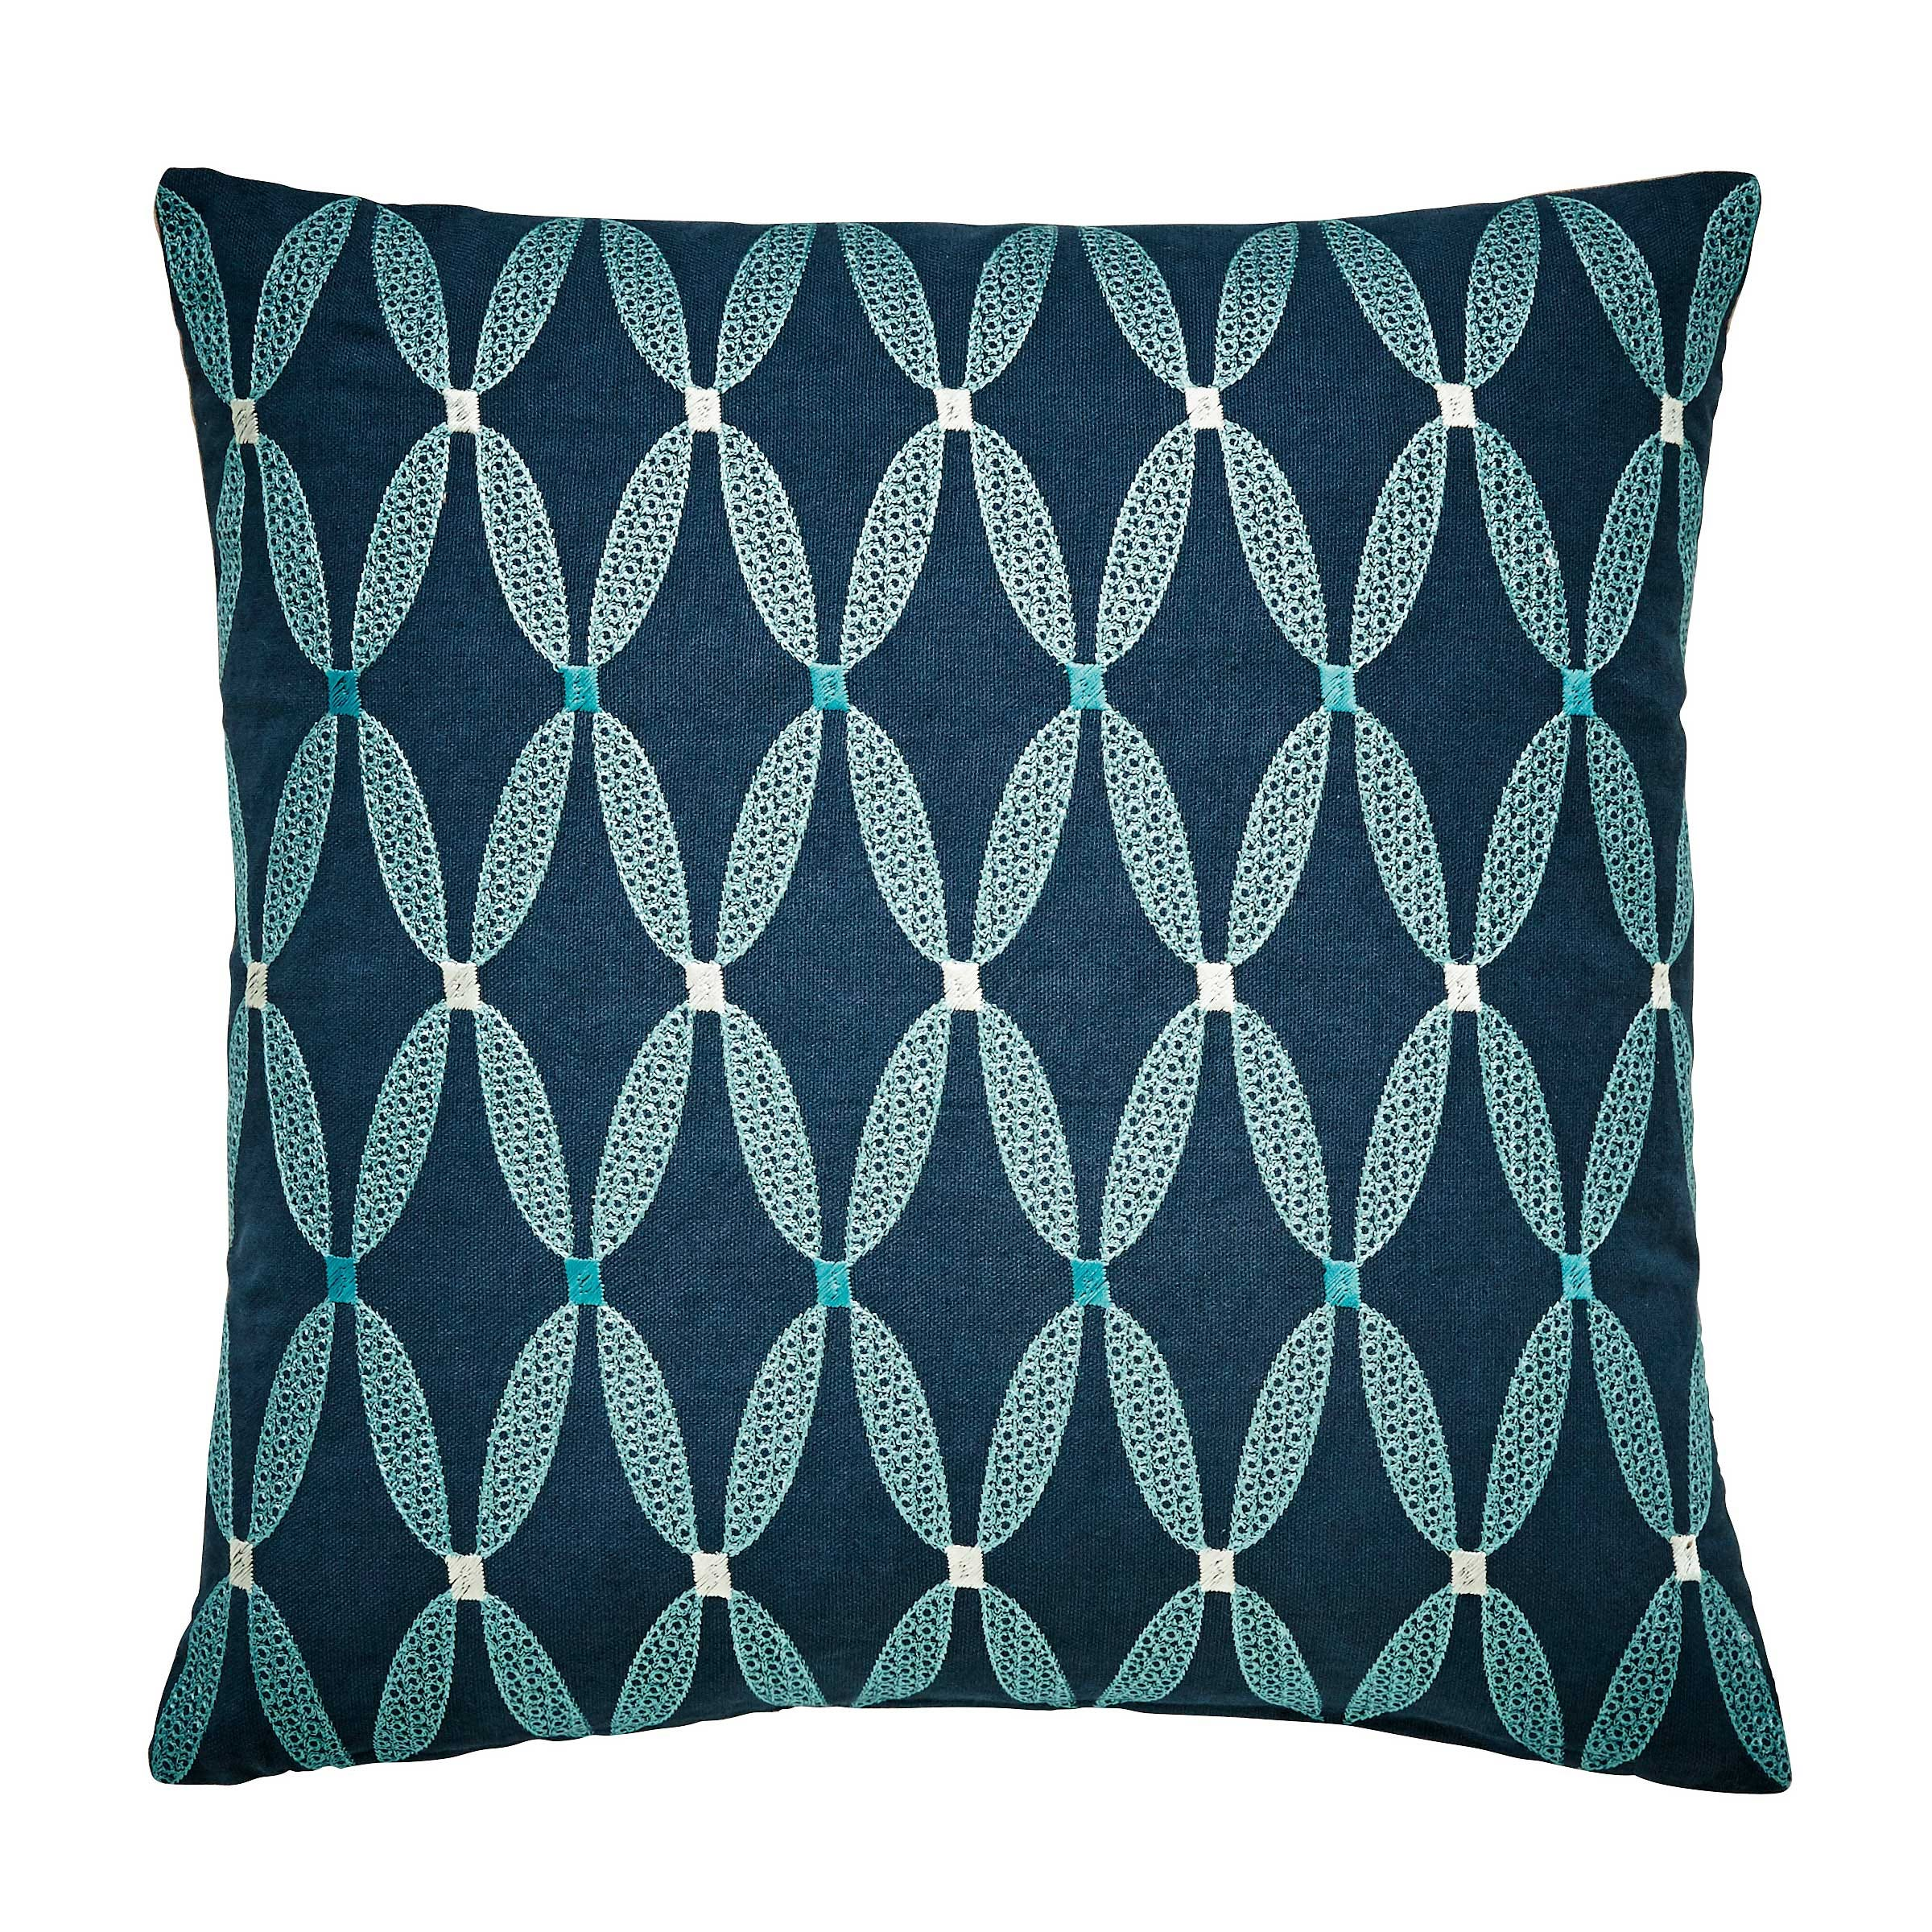 Bedeck 1951 Bedding - Loya Cushion - Navy